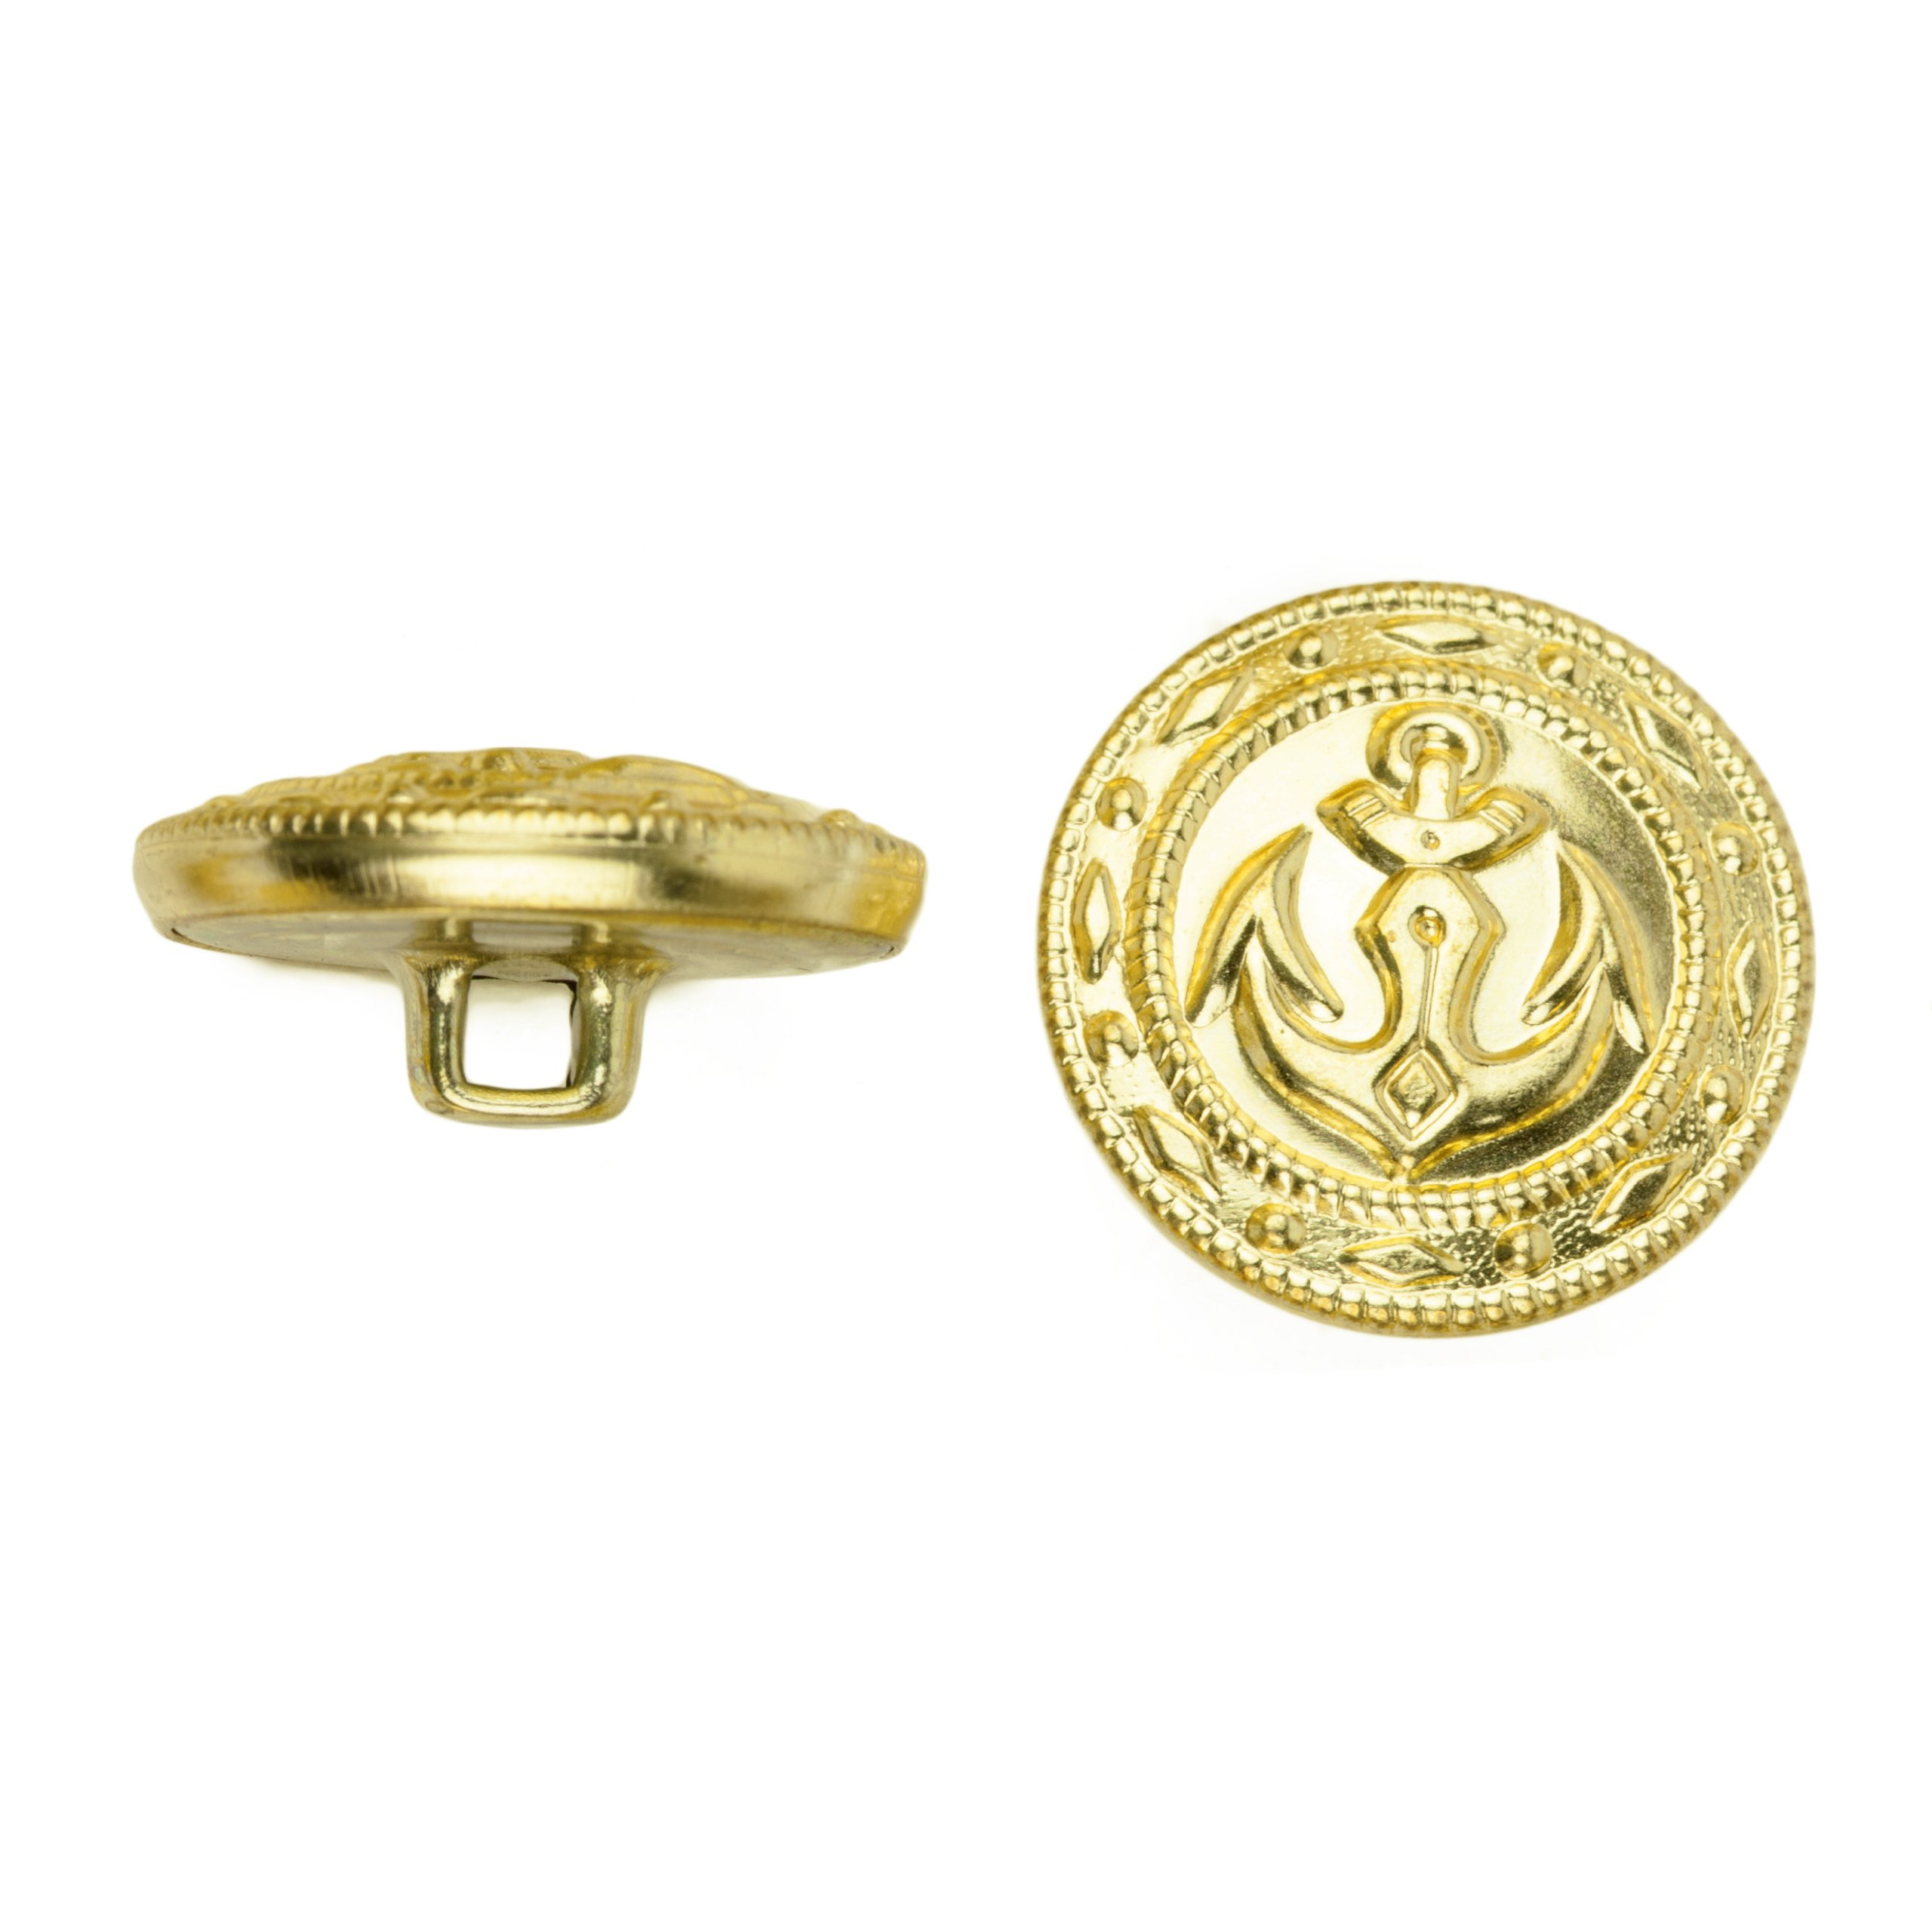 C&C Metal Products 5019 Fancy Edge Anchor Metal Button, Size 45 Ligne, Gold, 36-Pack